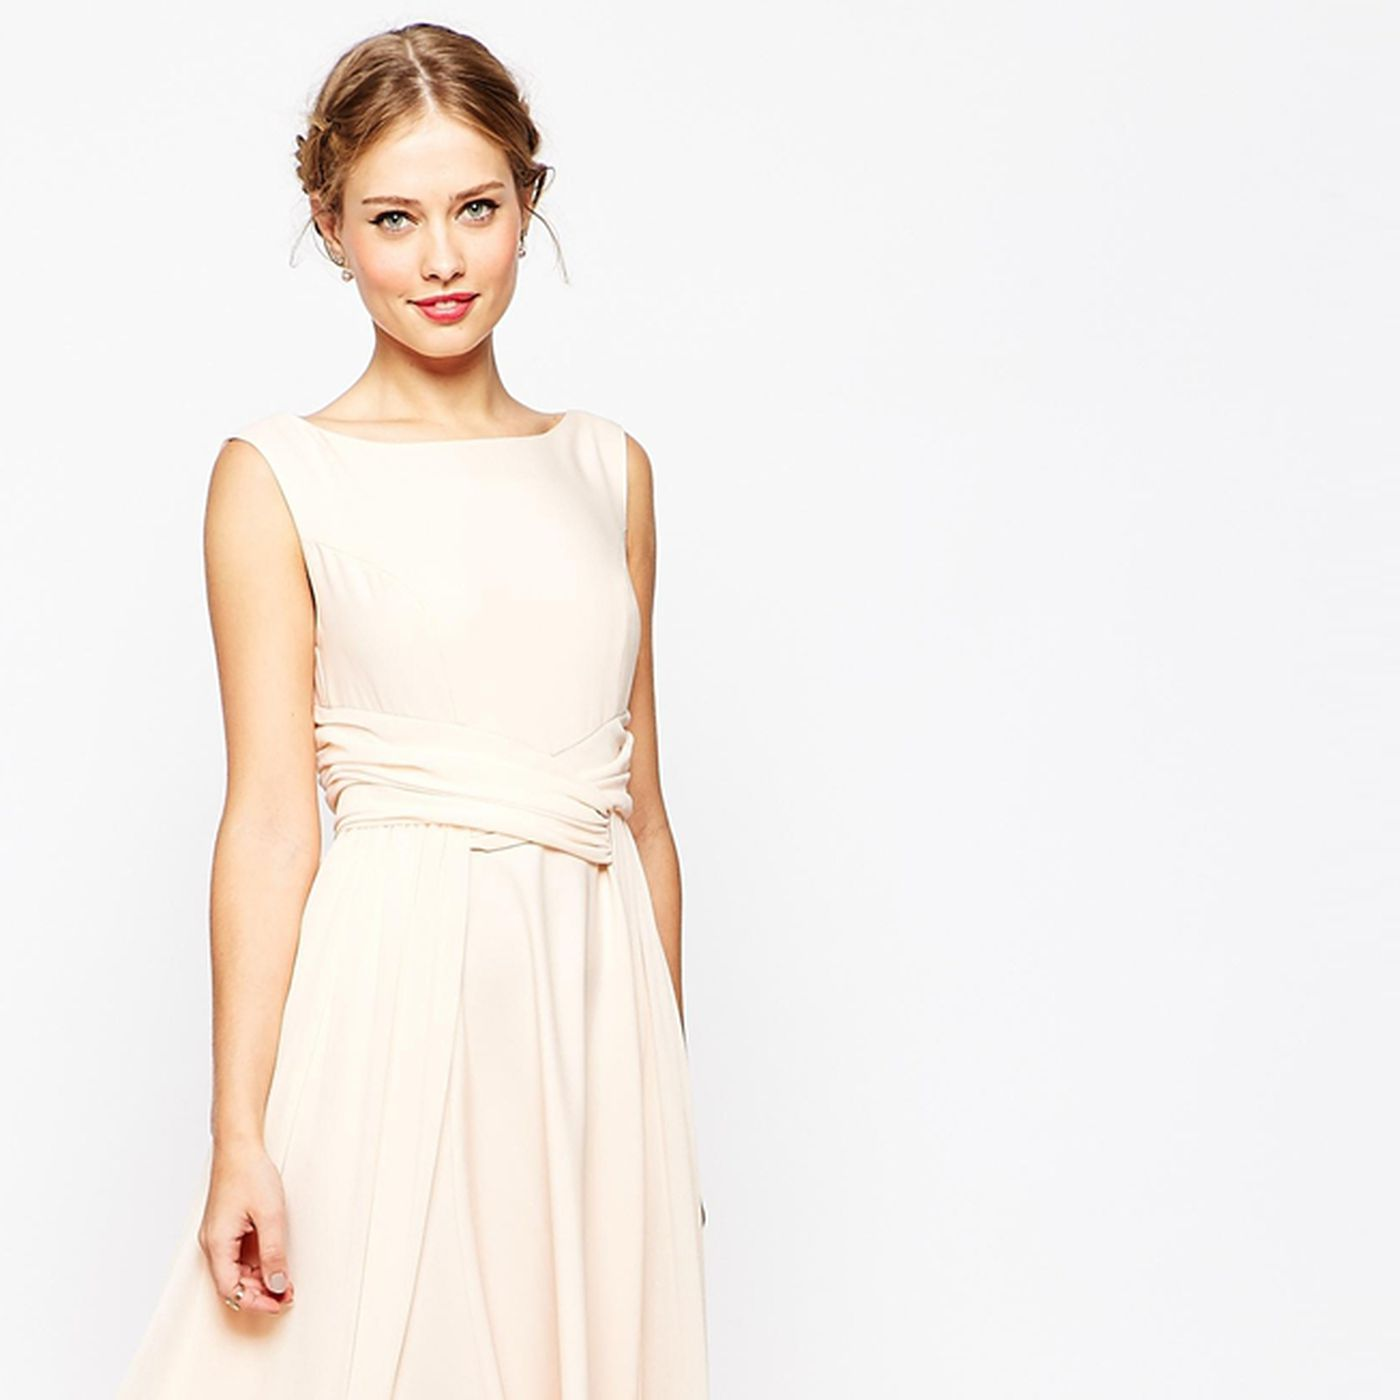 bd395df0a3f ASOS Will Launch an Affordable Bridal Collection This Spring - Racked